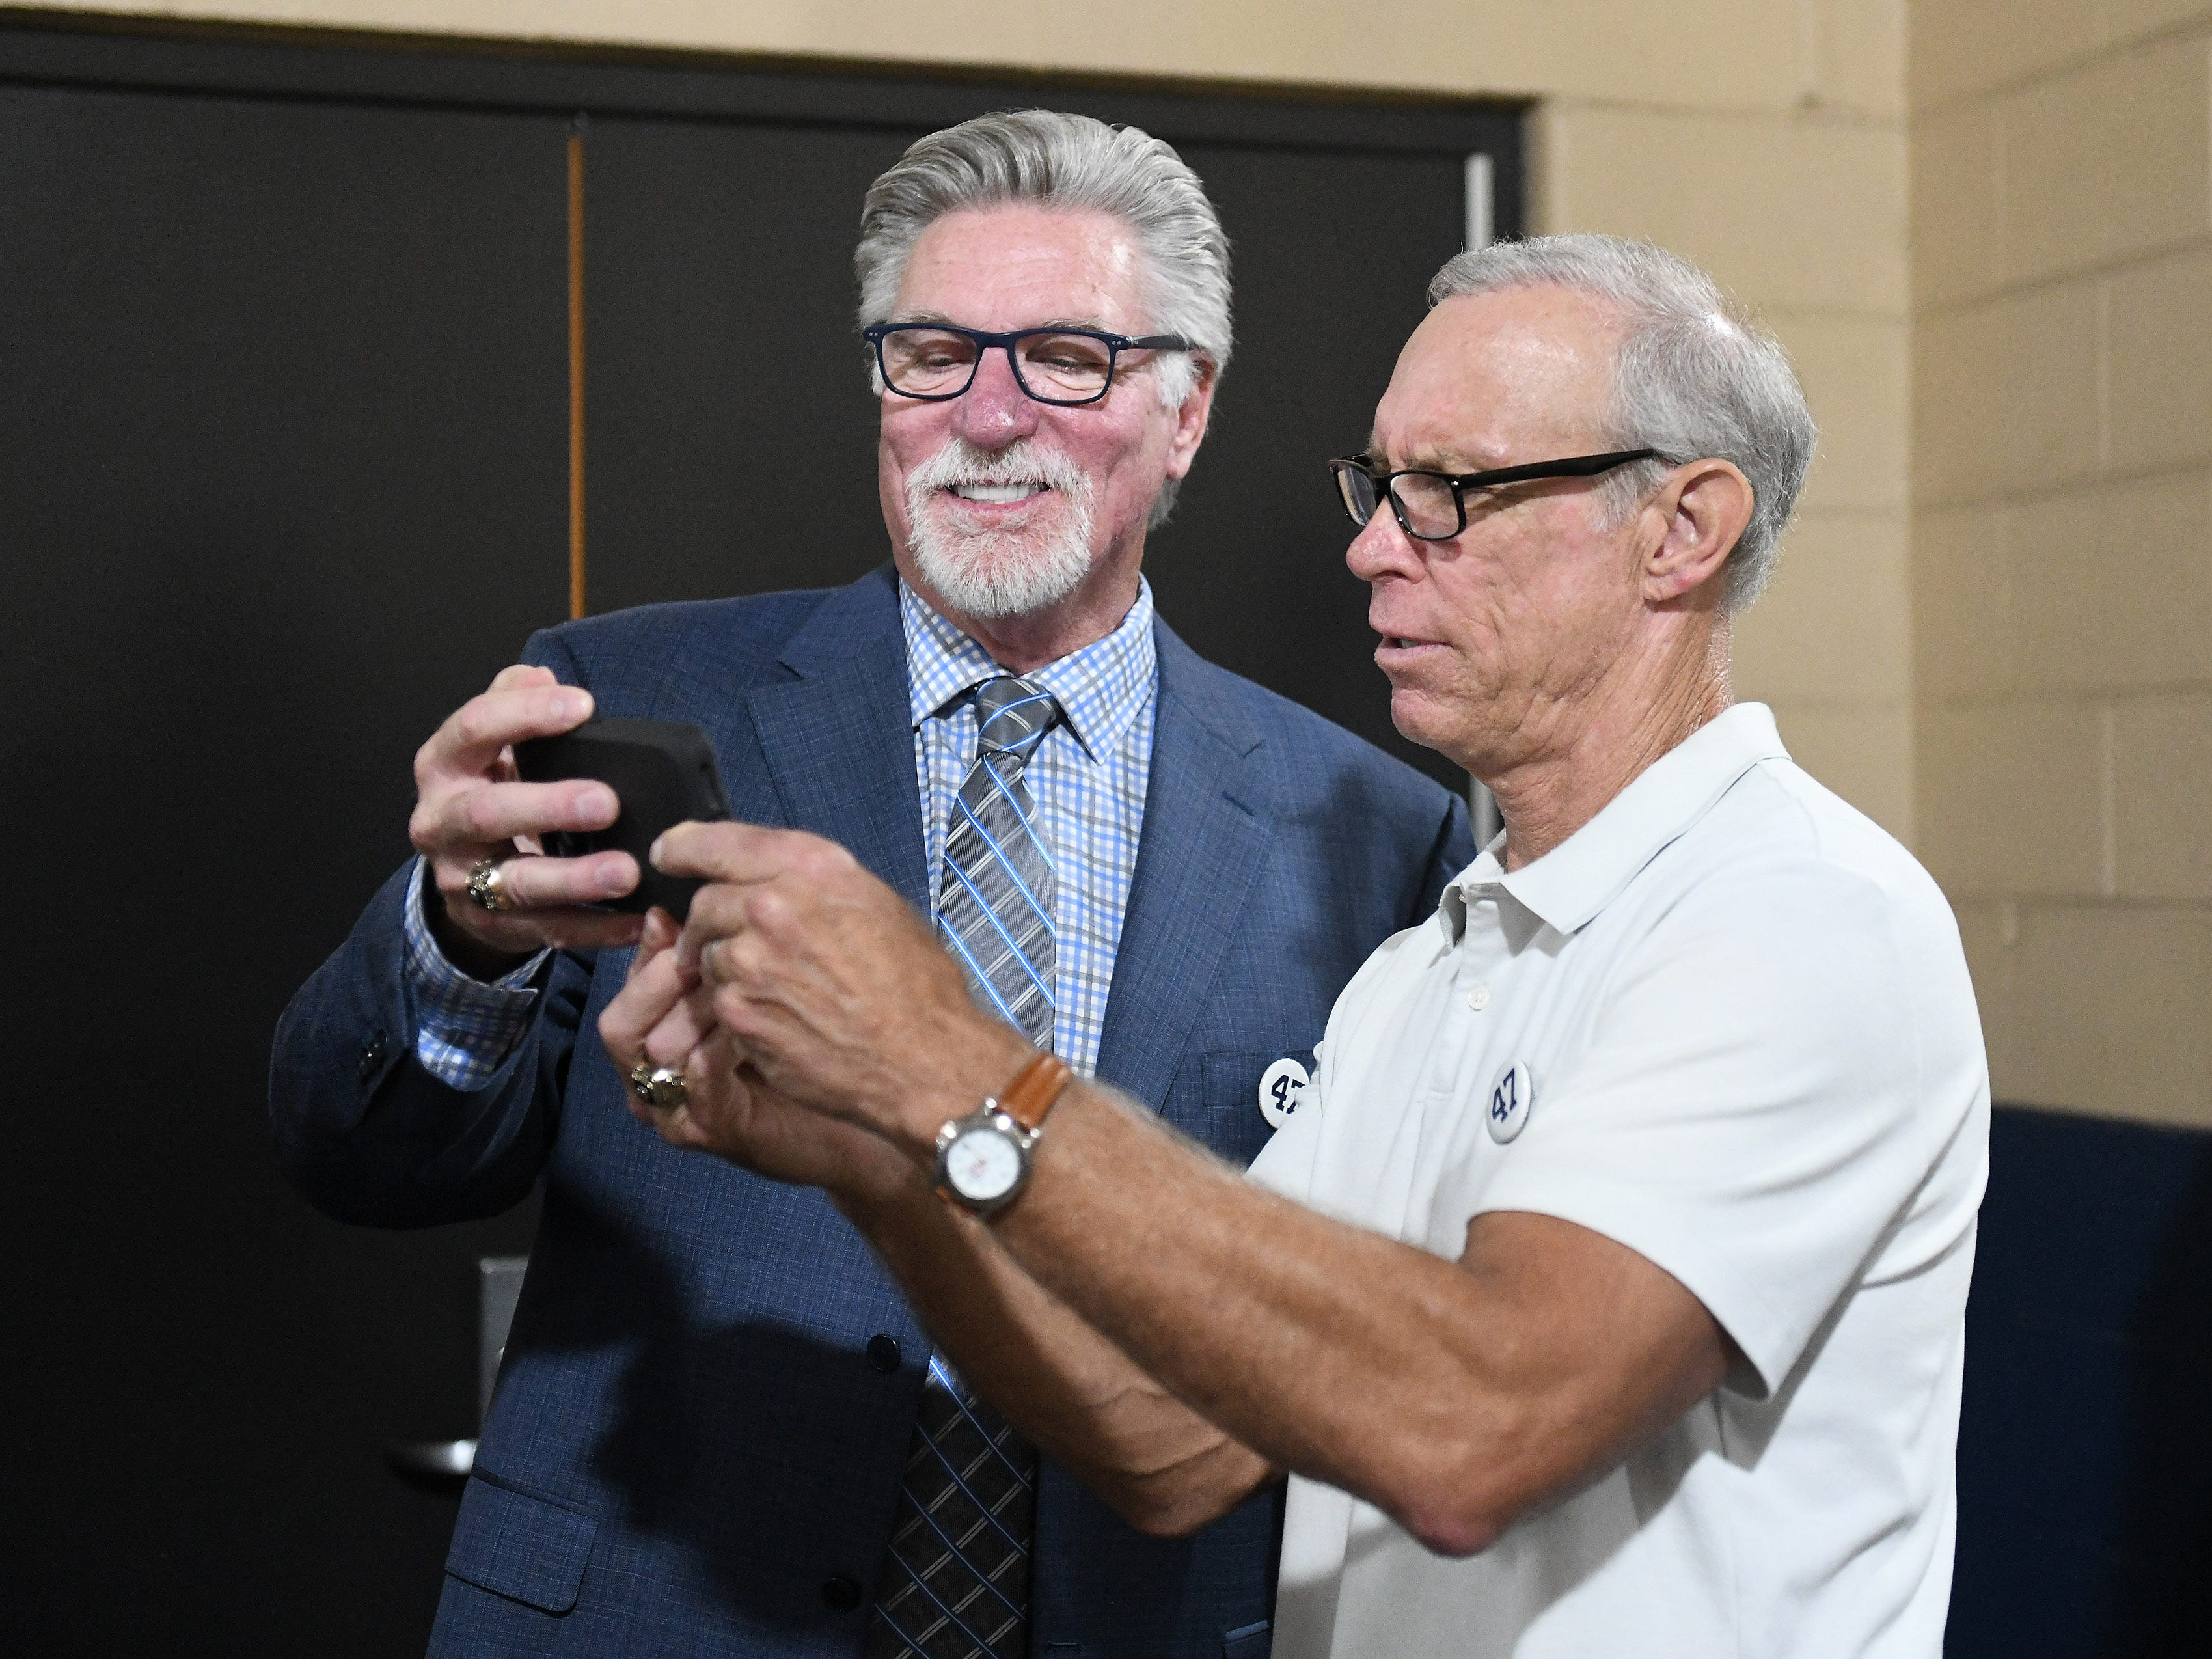 Jack Morris, left, and Alan Trammell, both inducted into the Hall of Fame this year, look at something on a phone before the ceremony.